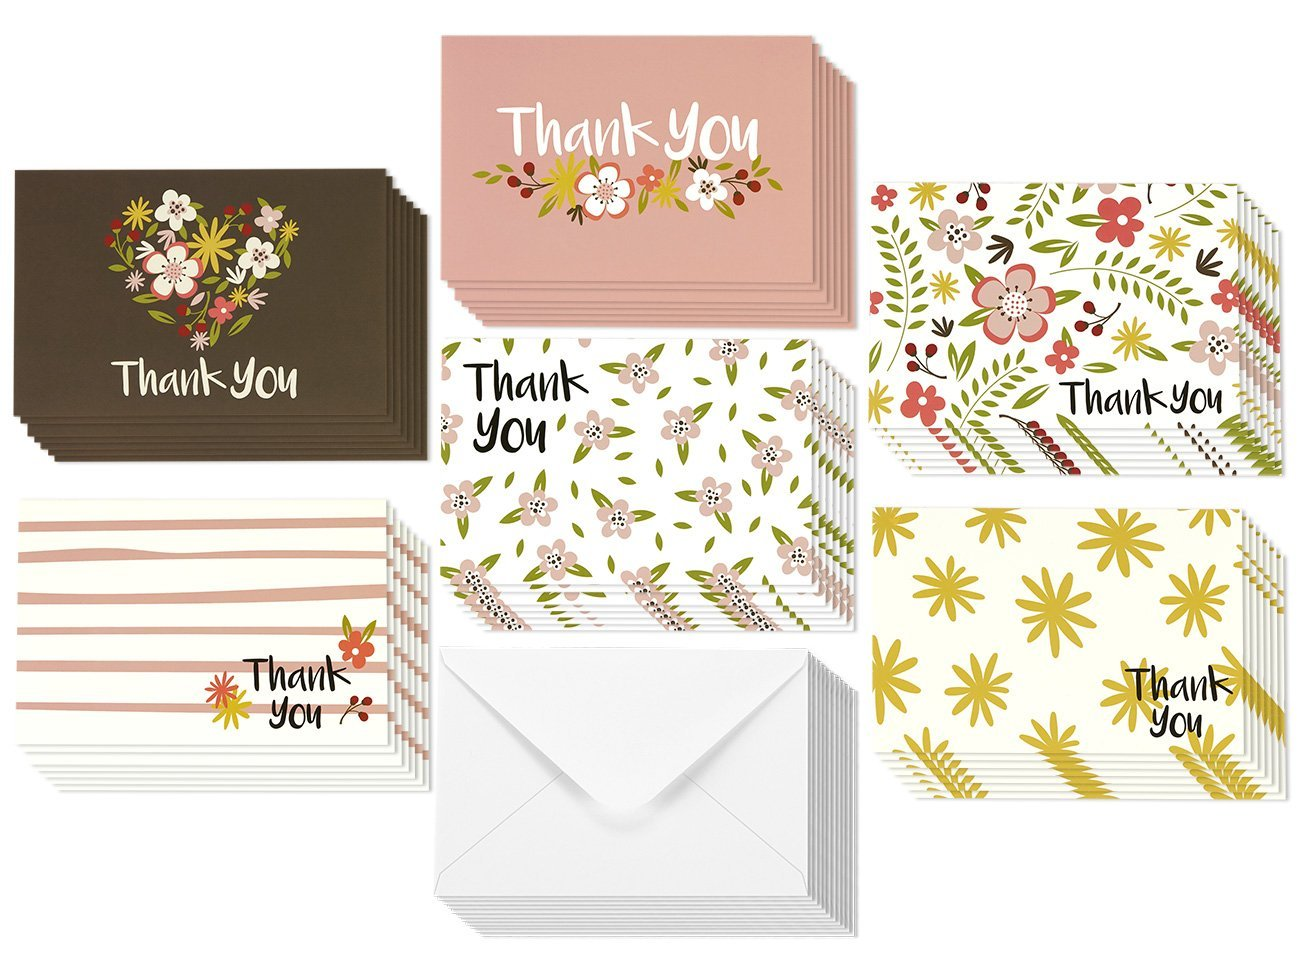 Cheap blank greeting cards find blank greeting cards deals on line get quotations thank you note cards for her bulk box set blank on the inside kristyandbryce Image collections